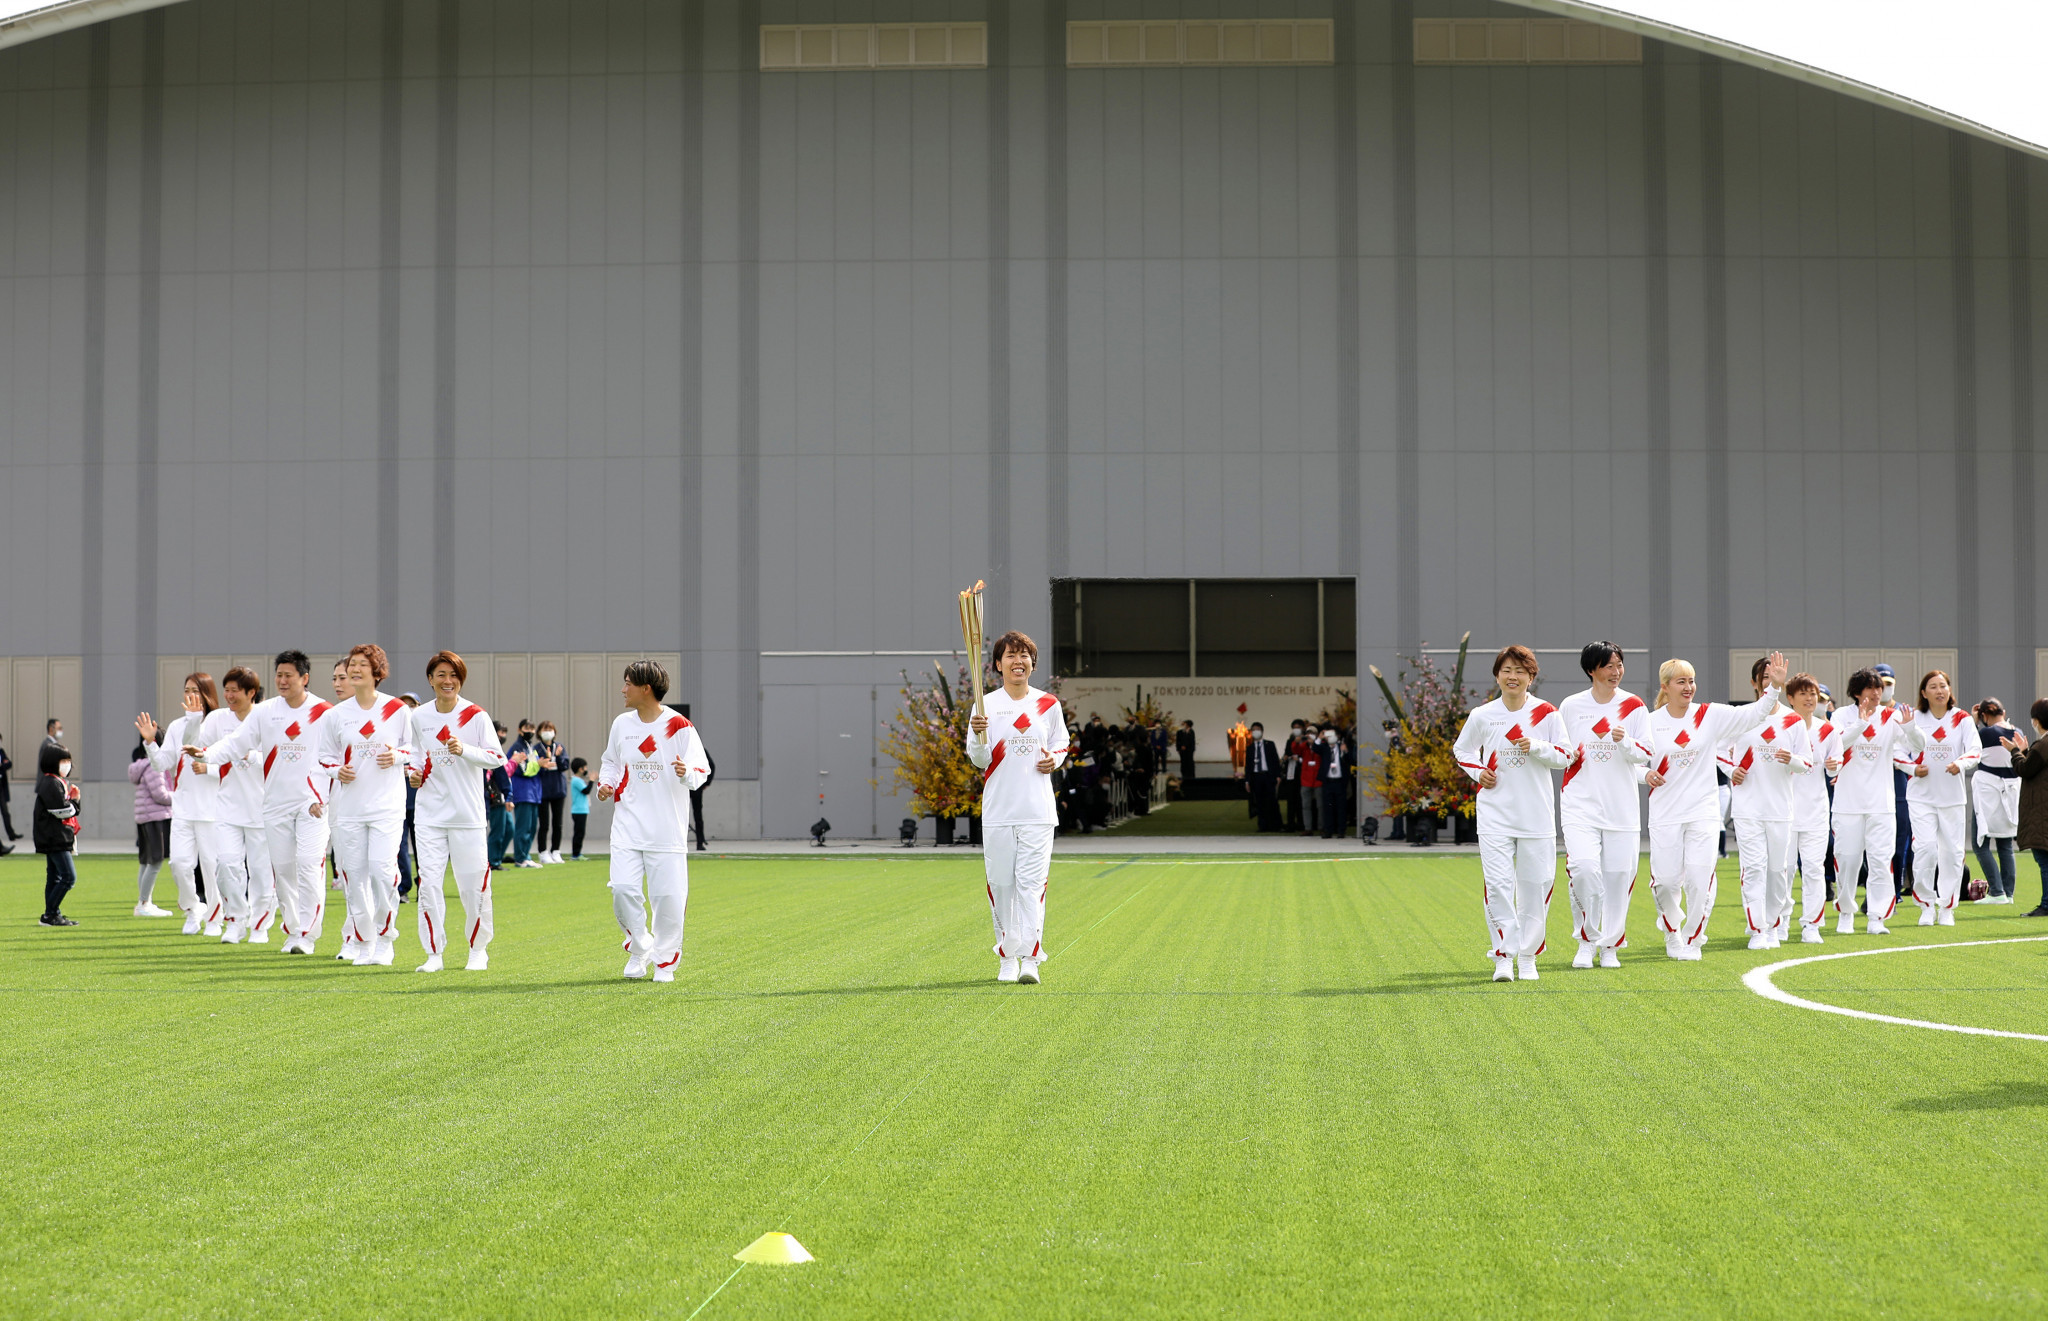 The J-Village national football training centre in Fukushima was the scene for the Torch Relay launch  ©Getty Images